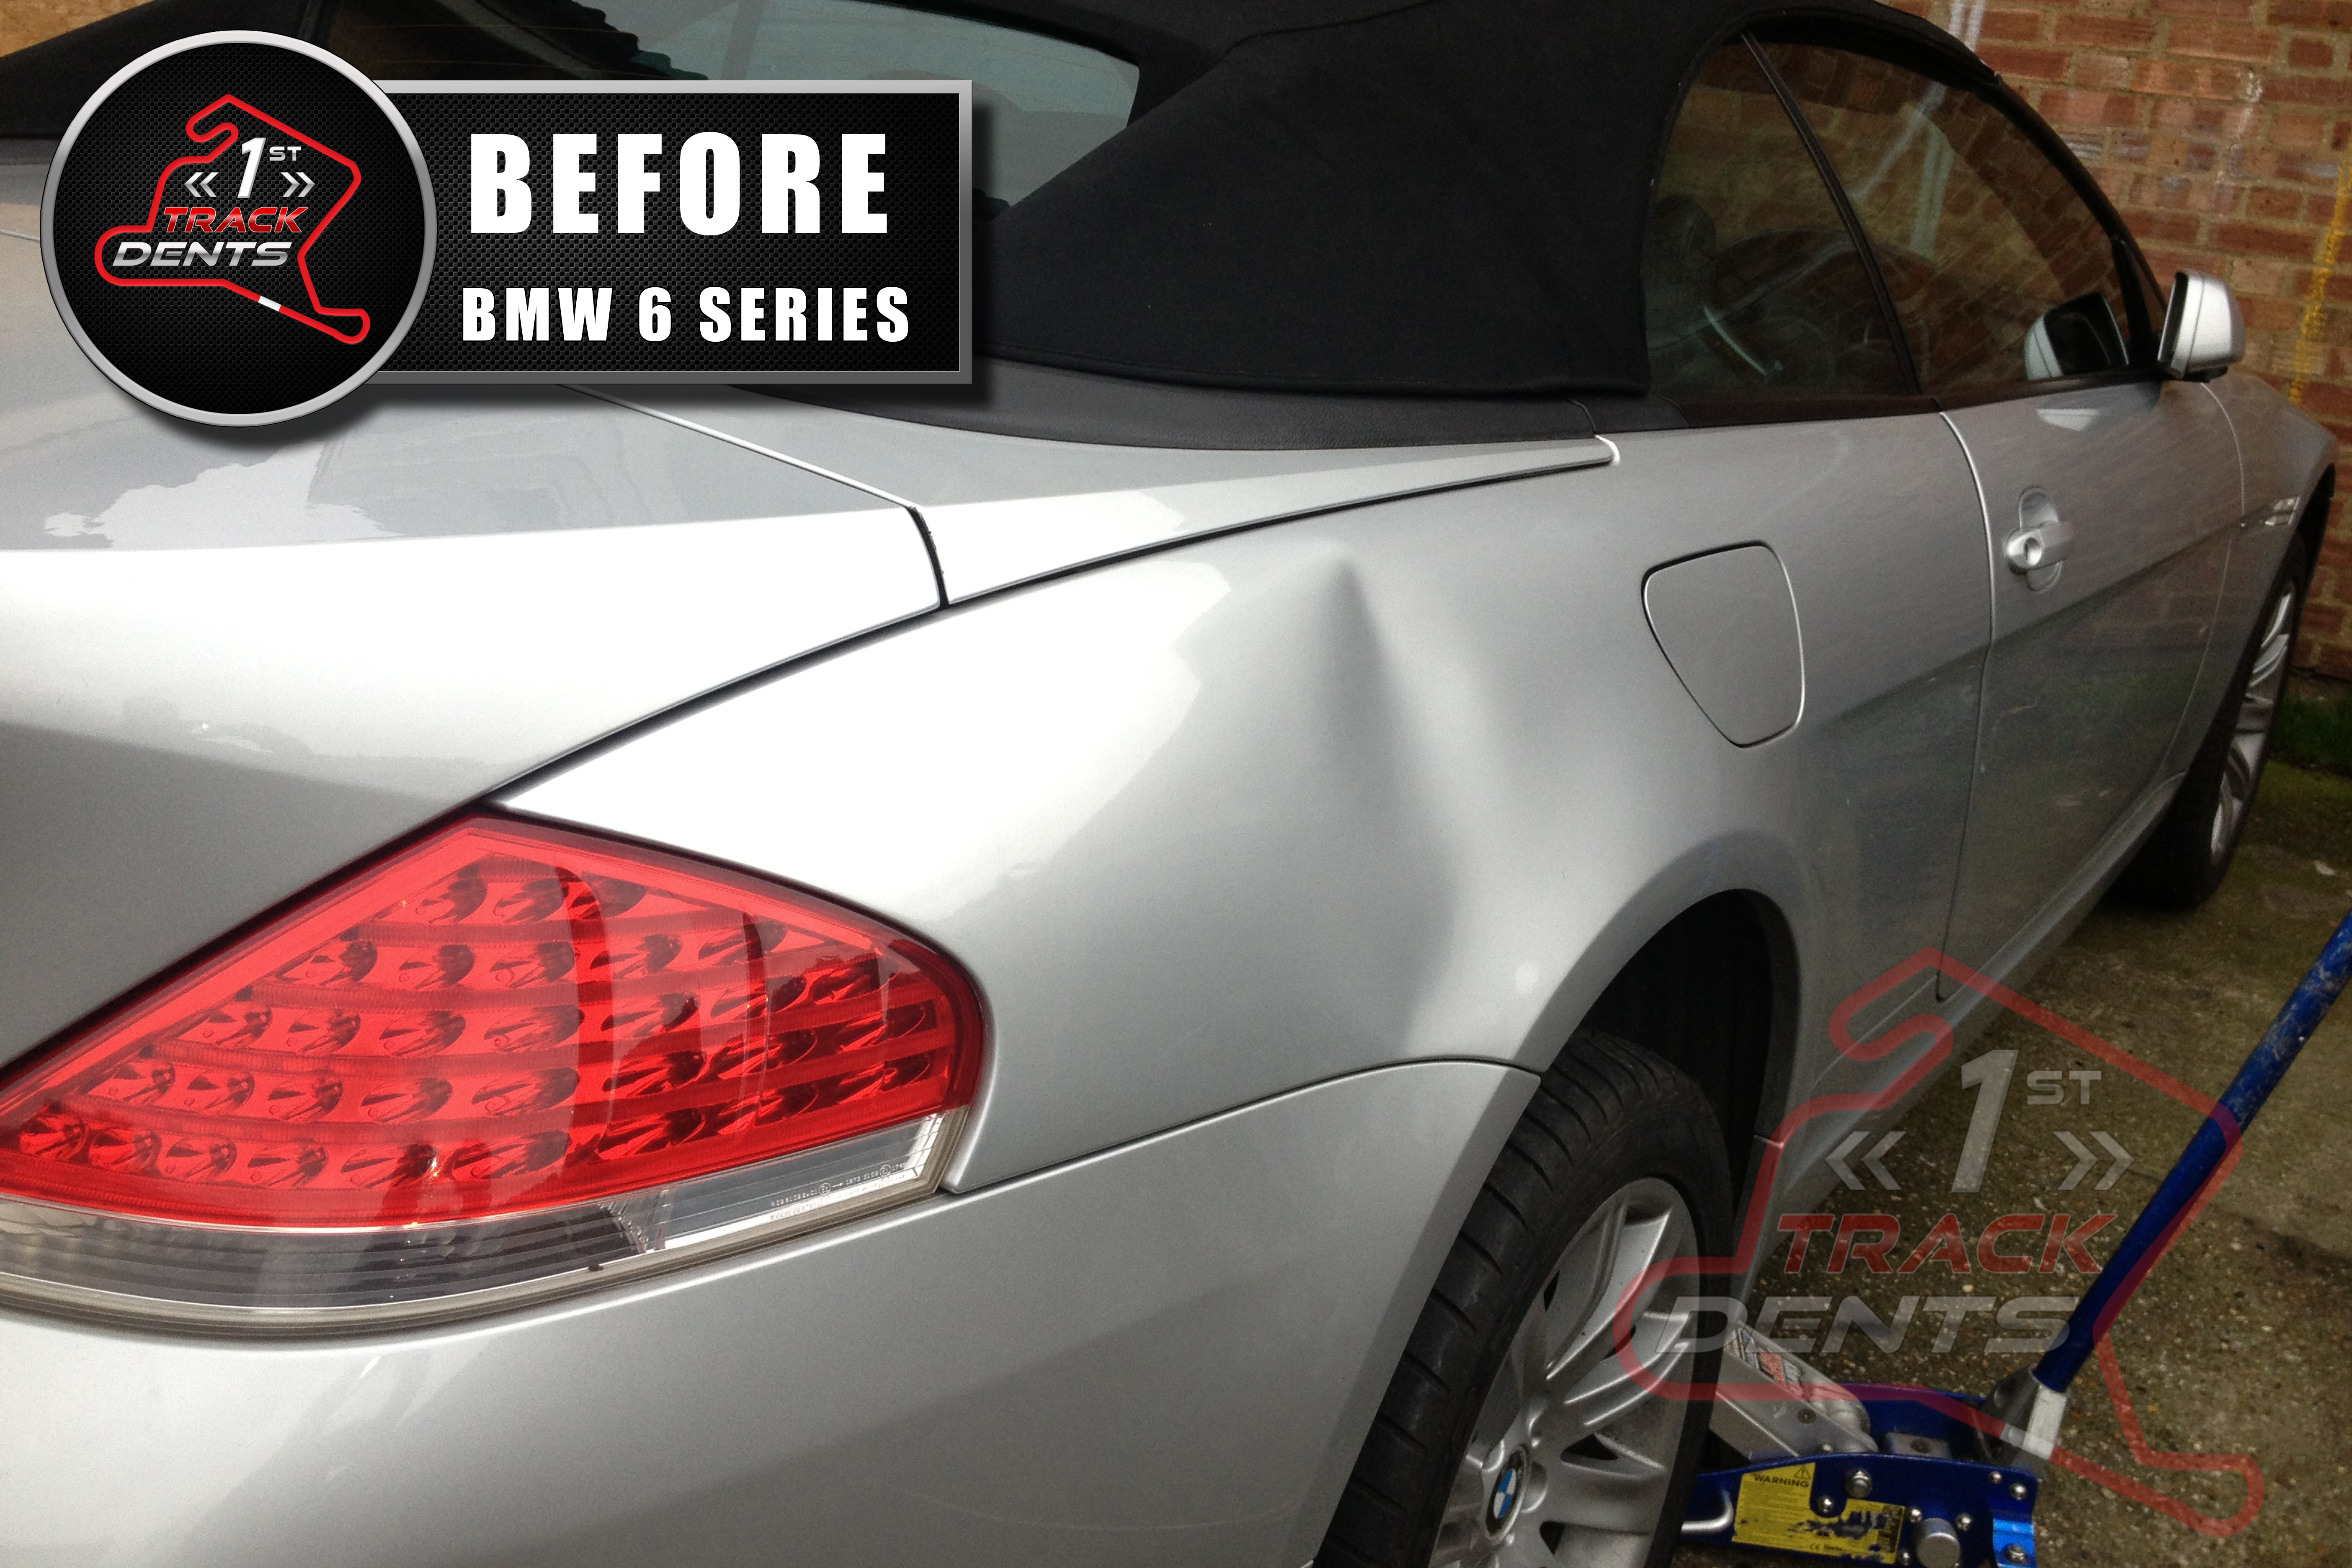 BMW 6 SERIES BEFORE